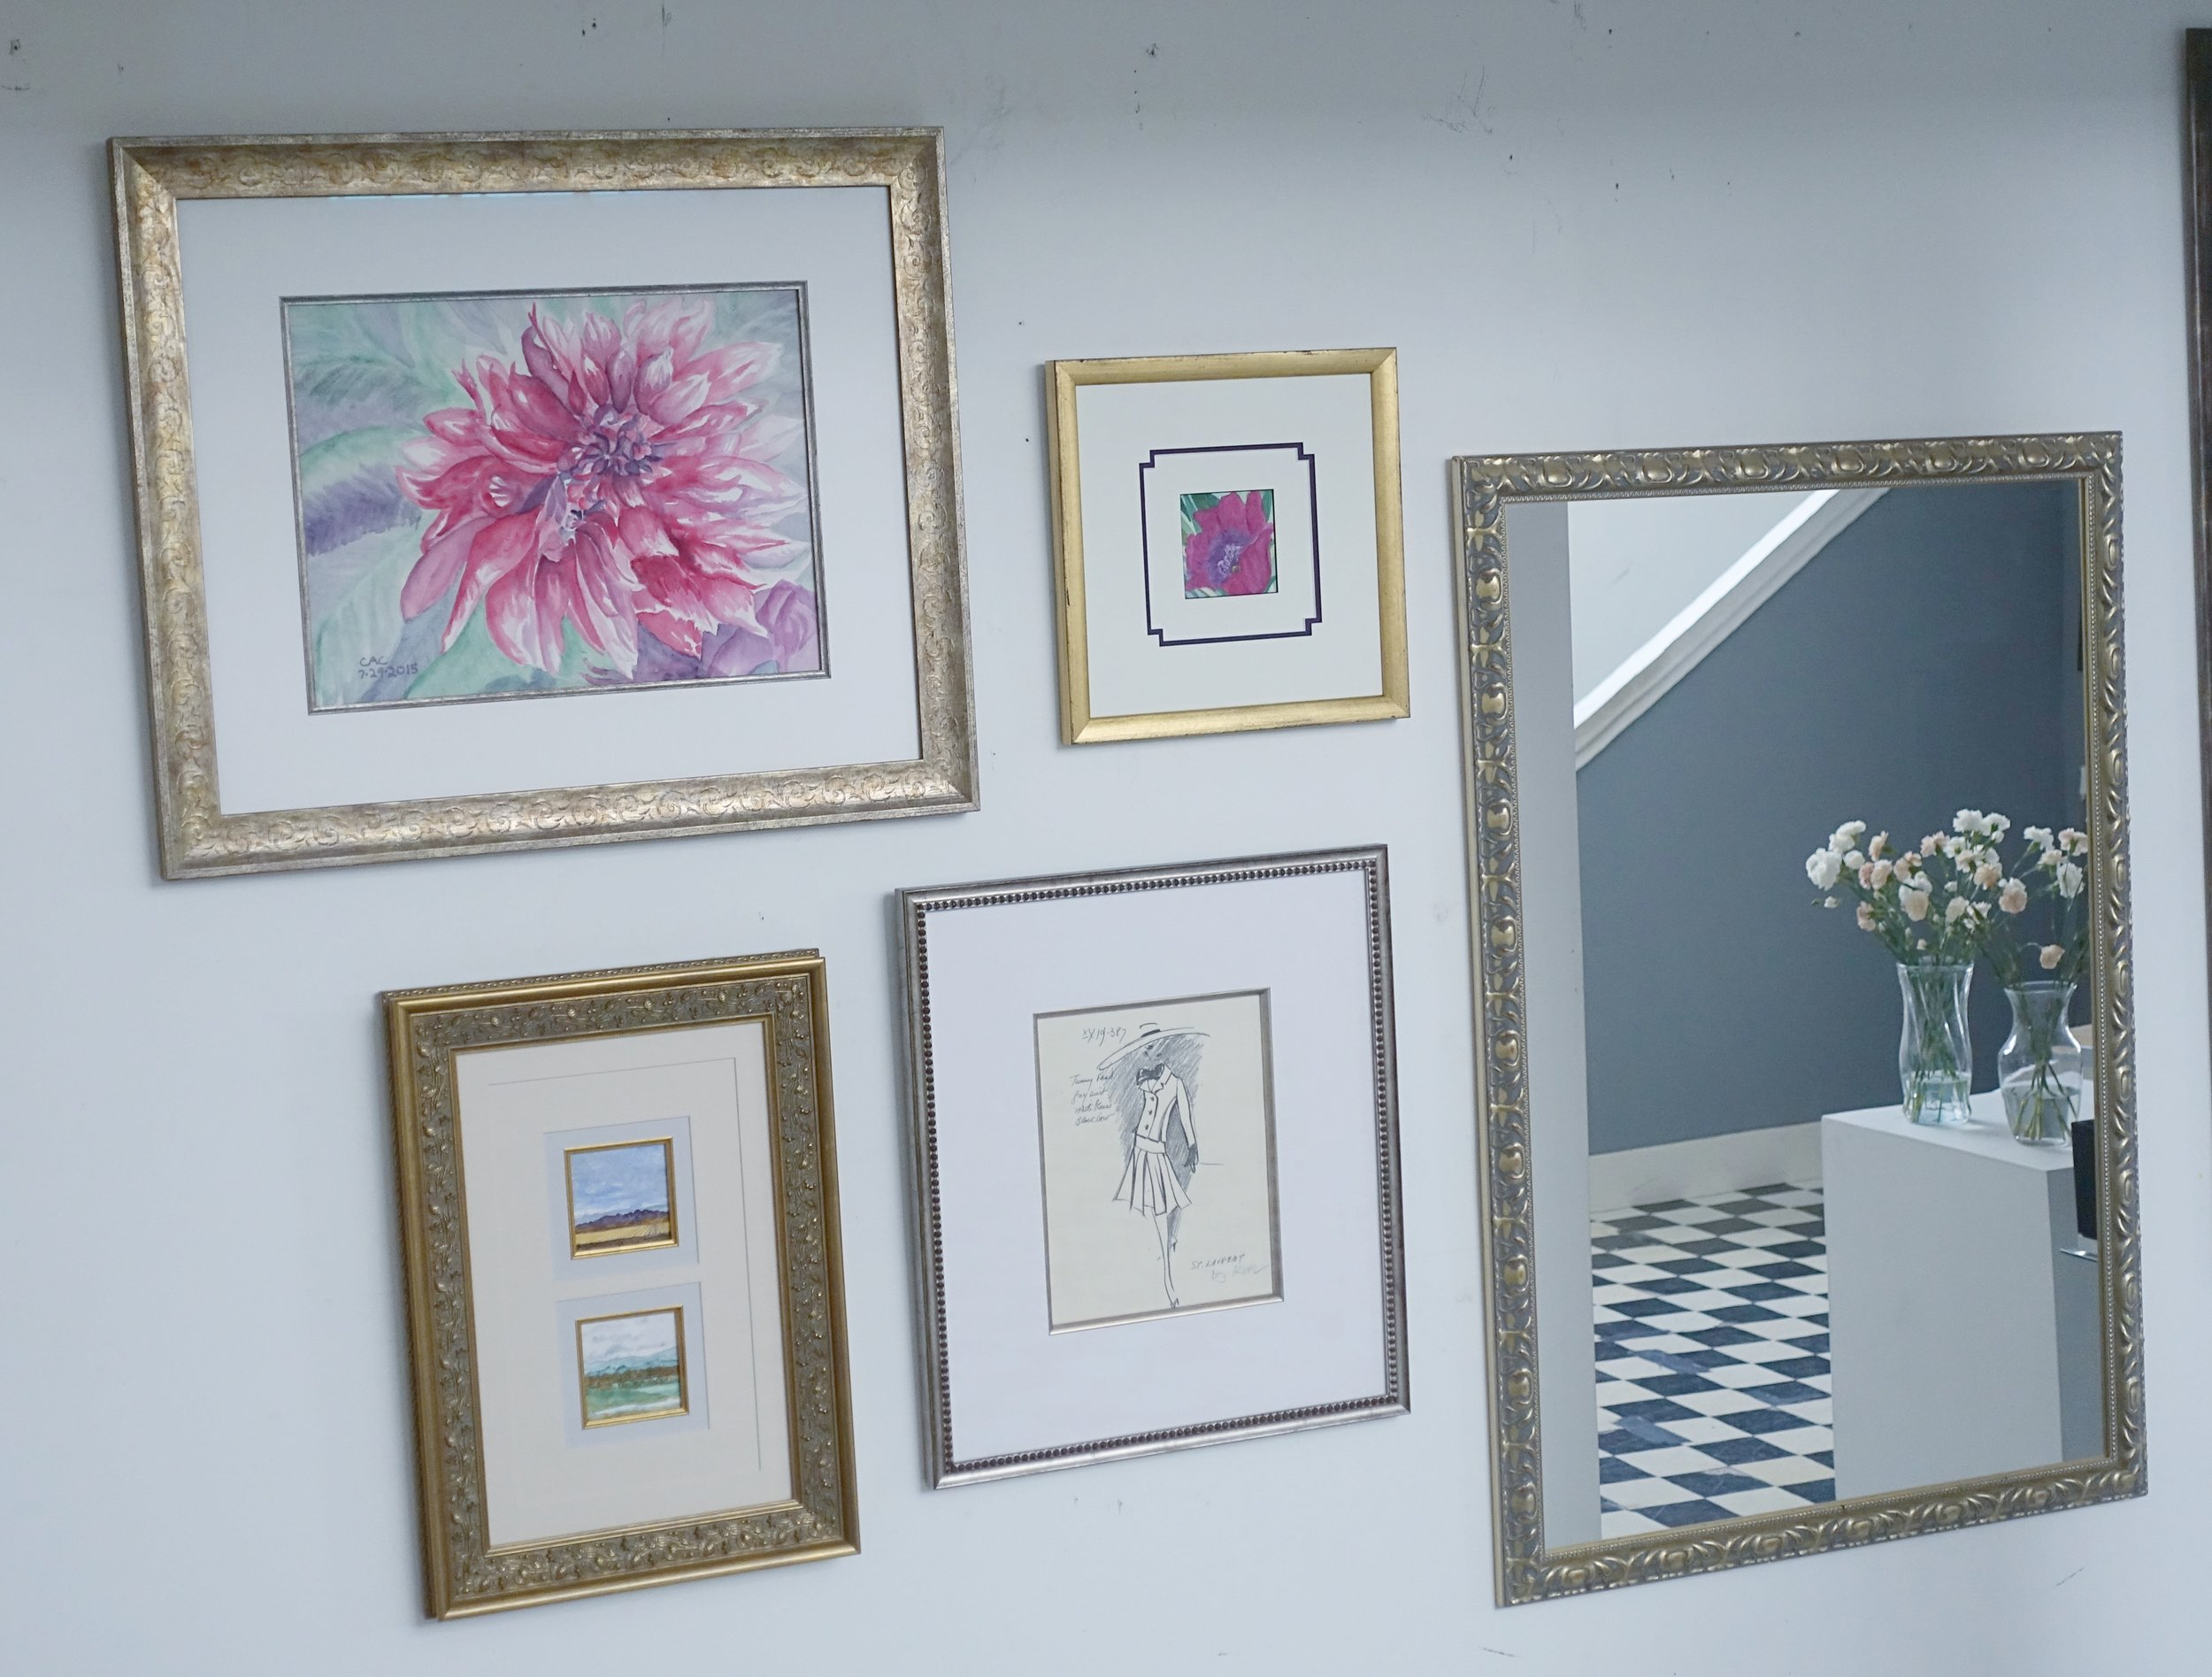 Gallery wall at the shop. Each frame design is different, but the arrangement of color and mood build balance and cohesion. The placement of the mirror broadens the space.   Watercolors by Carol Ann Conners; Fashion illustration by Ruth